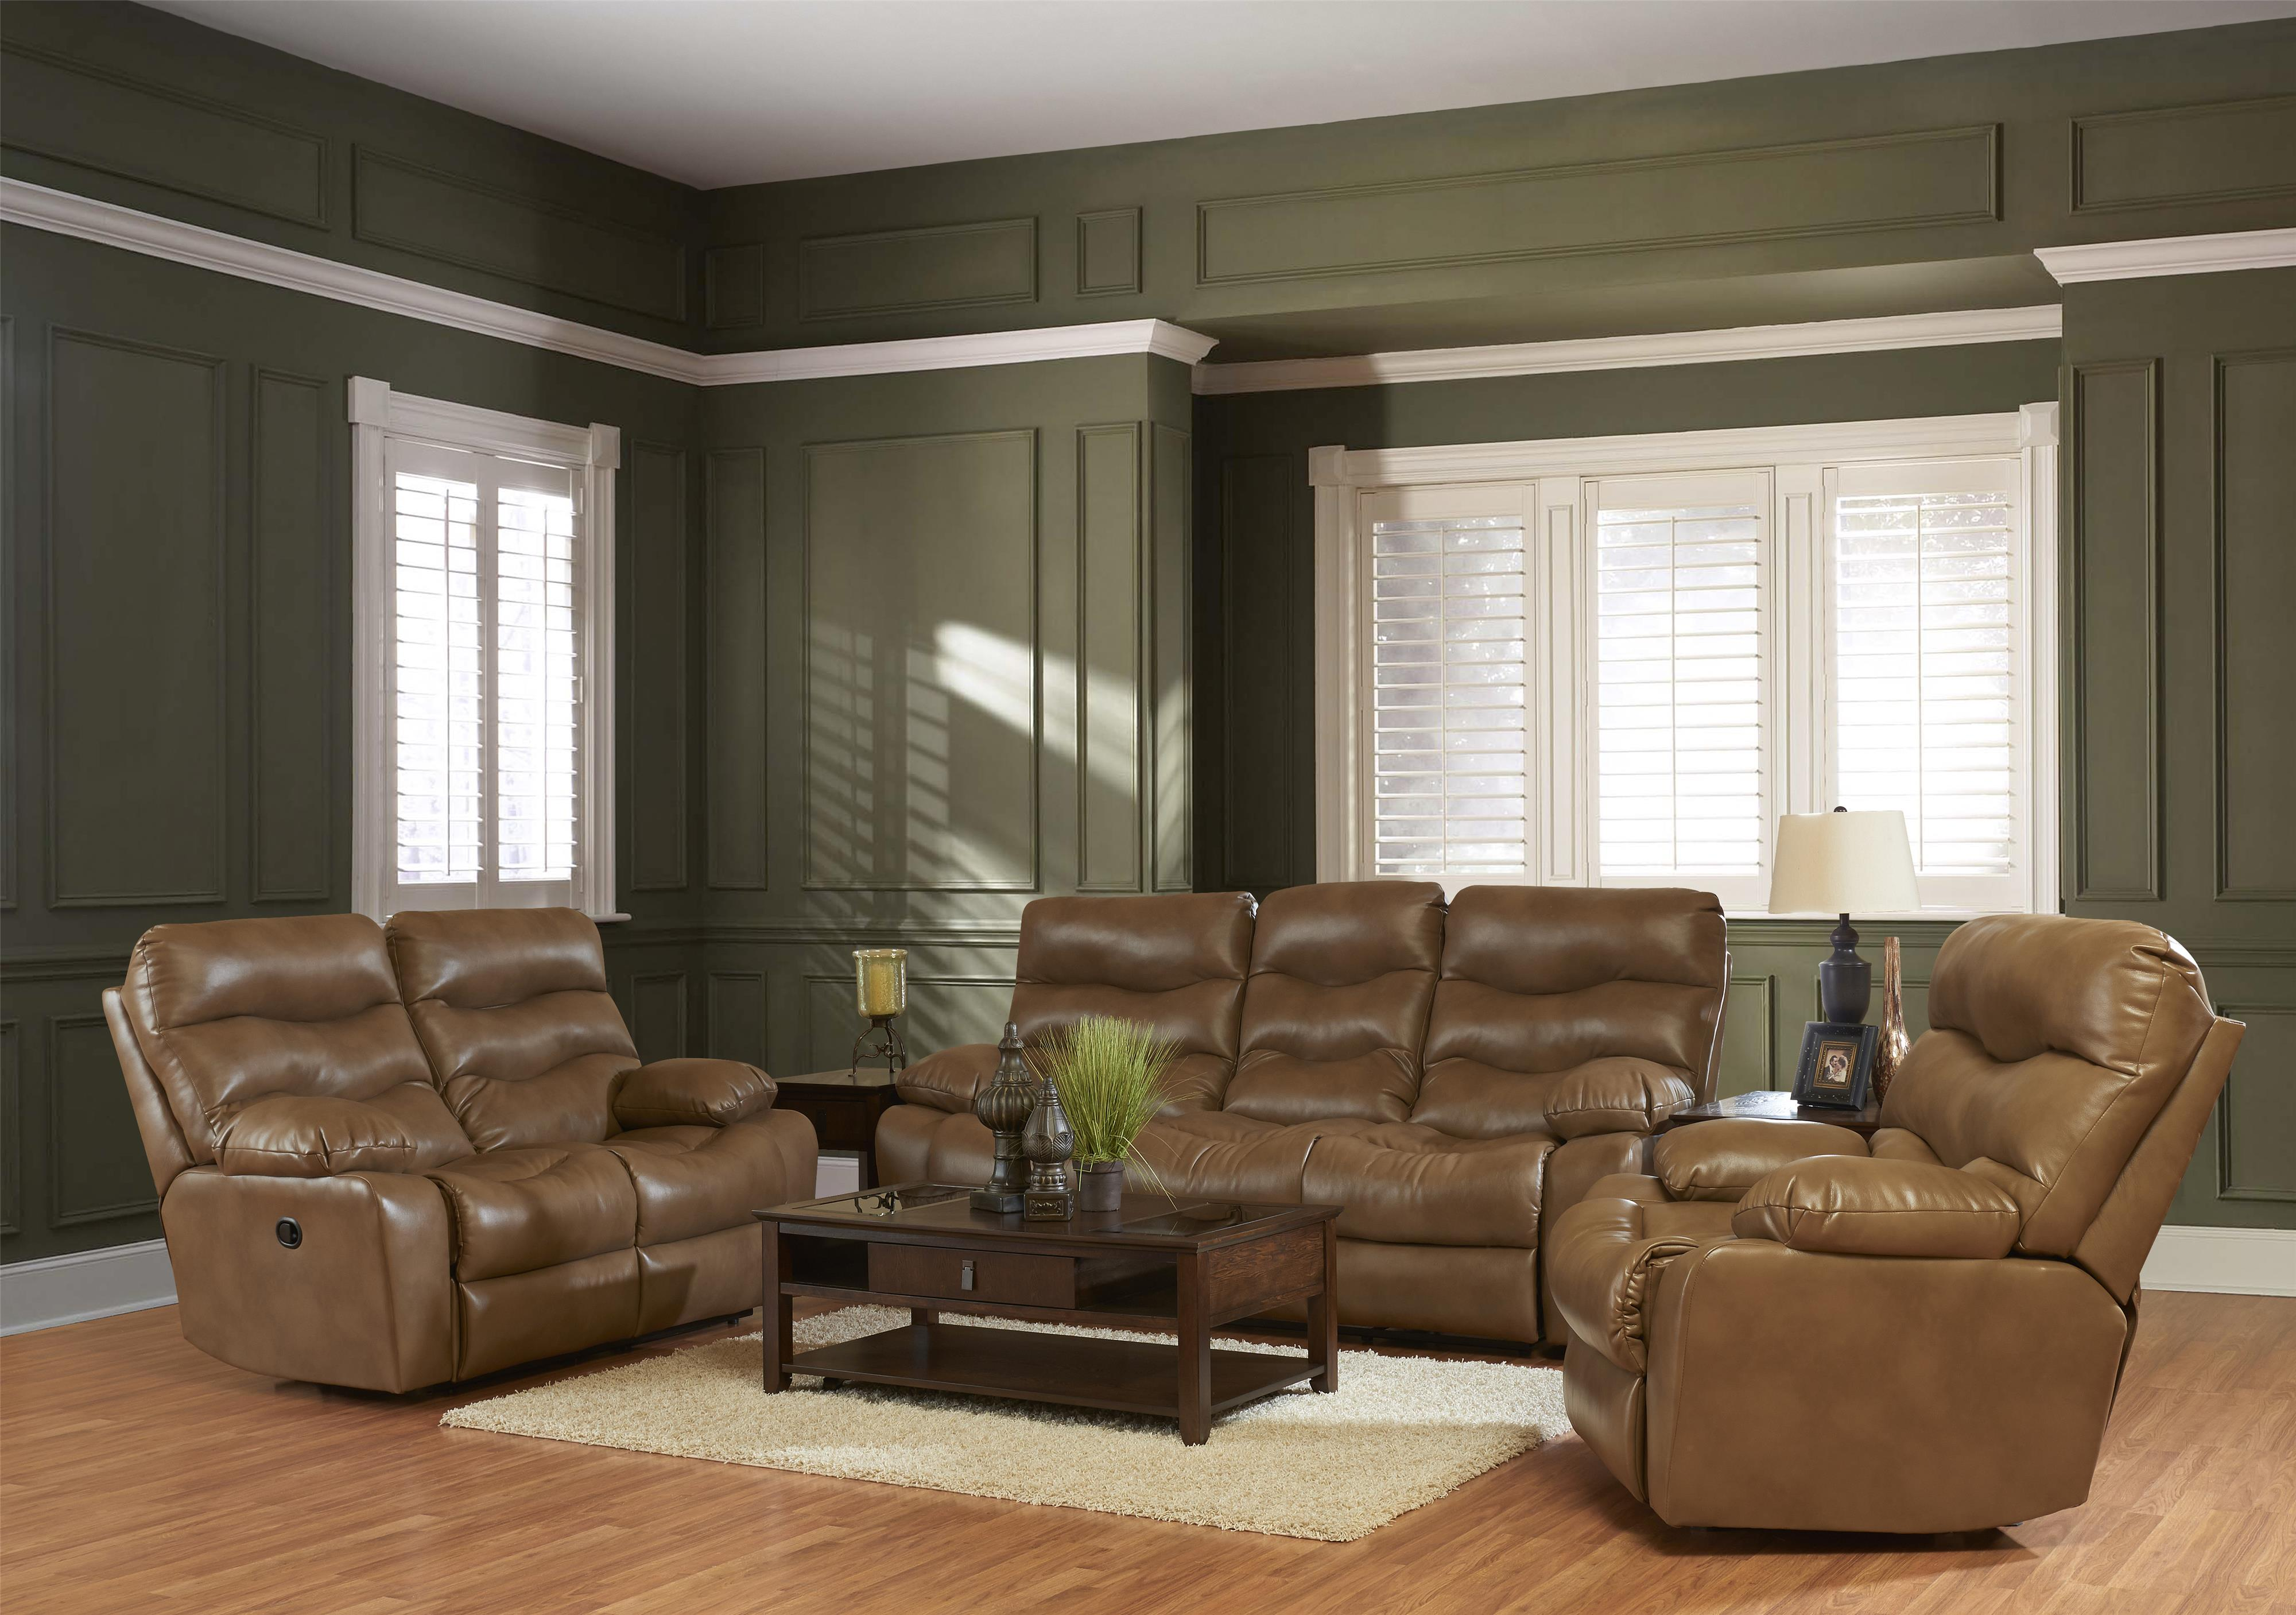 Klaussner Hercules Casual Living Room Group - Item Number: 27403 Living Room Group 1